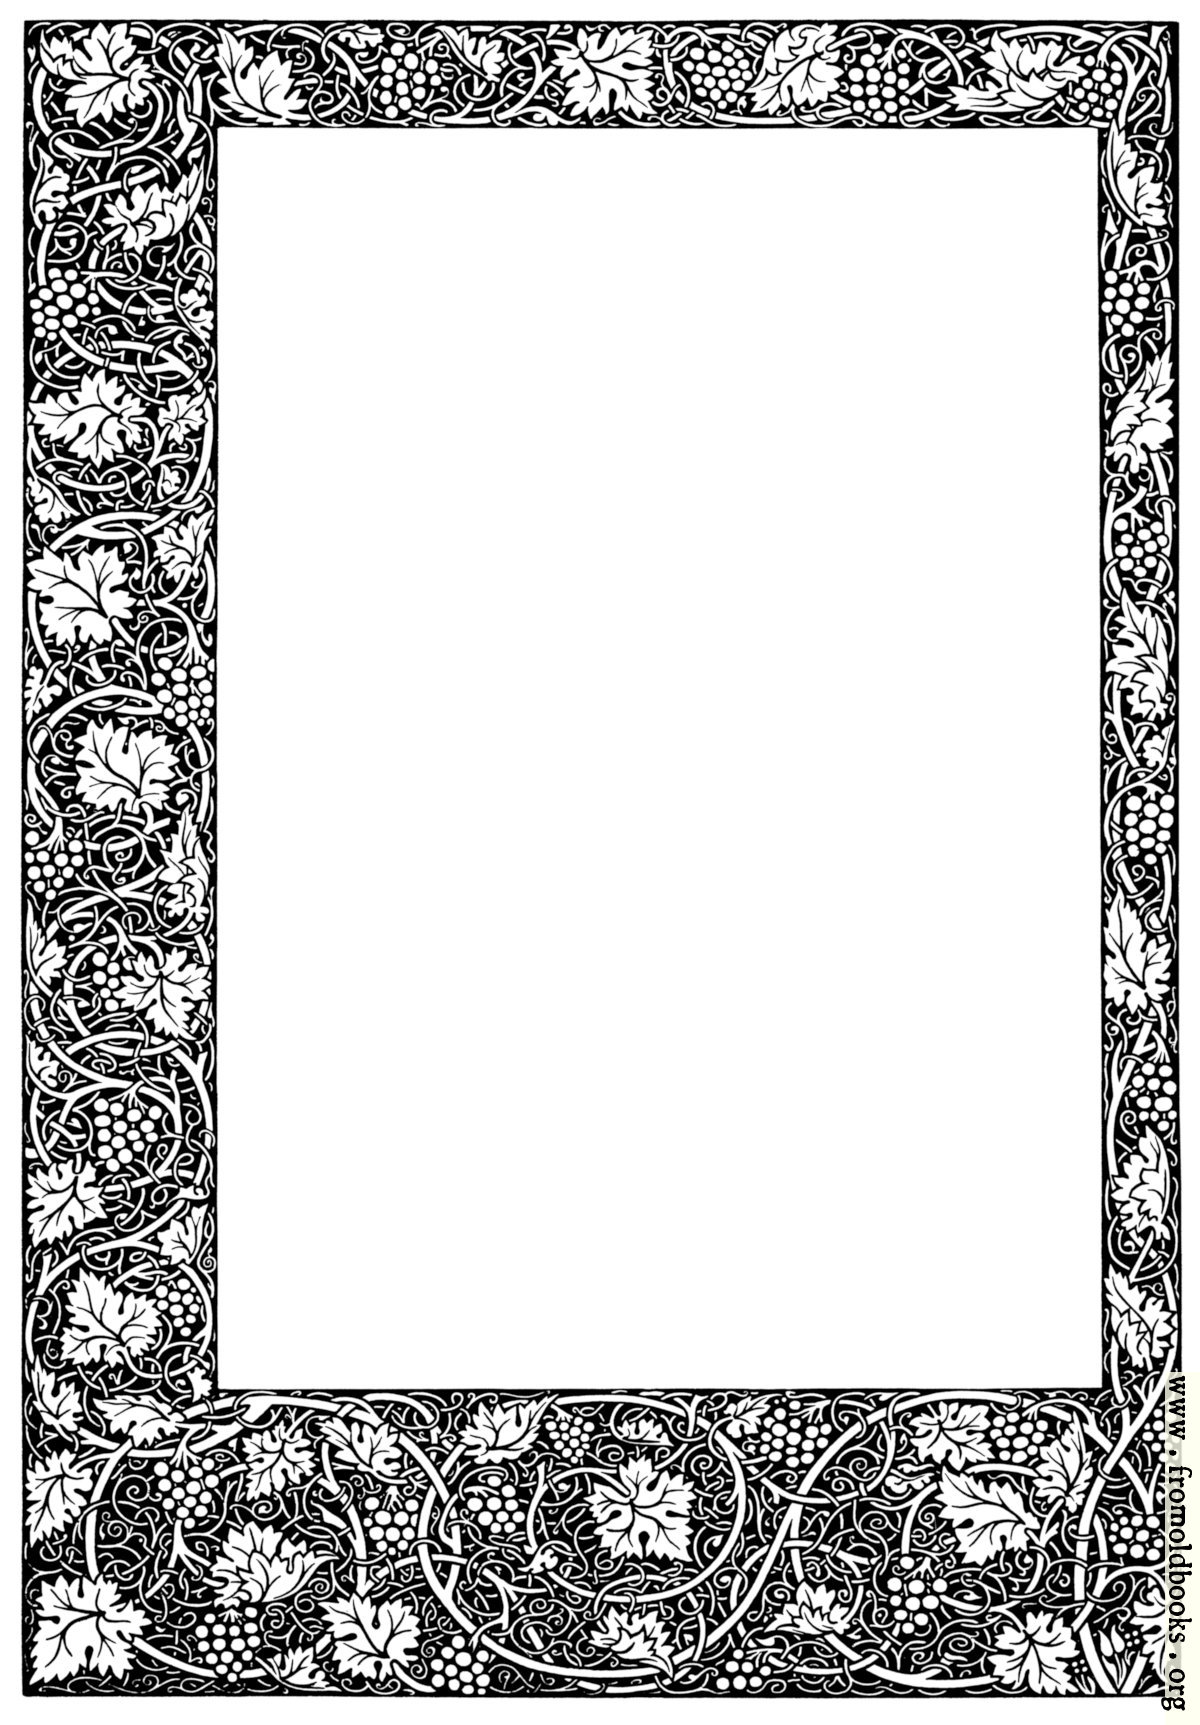 [Picture: Full-page arts and craft movement border]